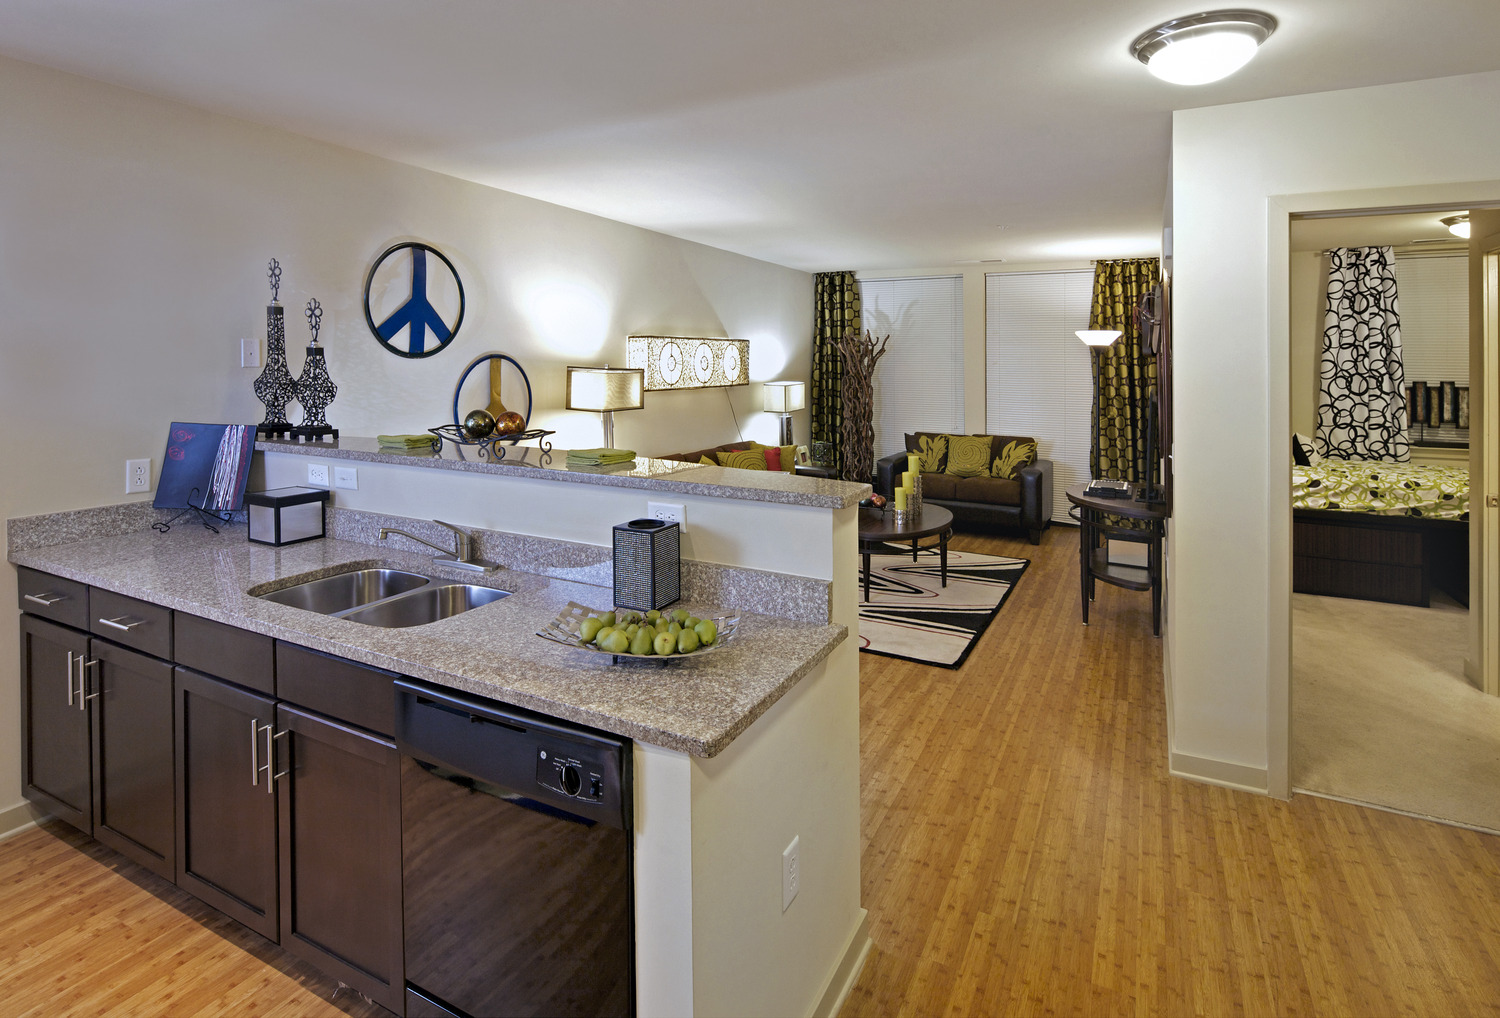 CBG builds Varsity at College Park, a 901-Bed Student Housing Community with 258 Luxury Apartments in College Park, MD - Image #7